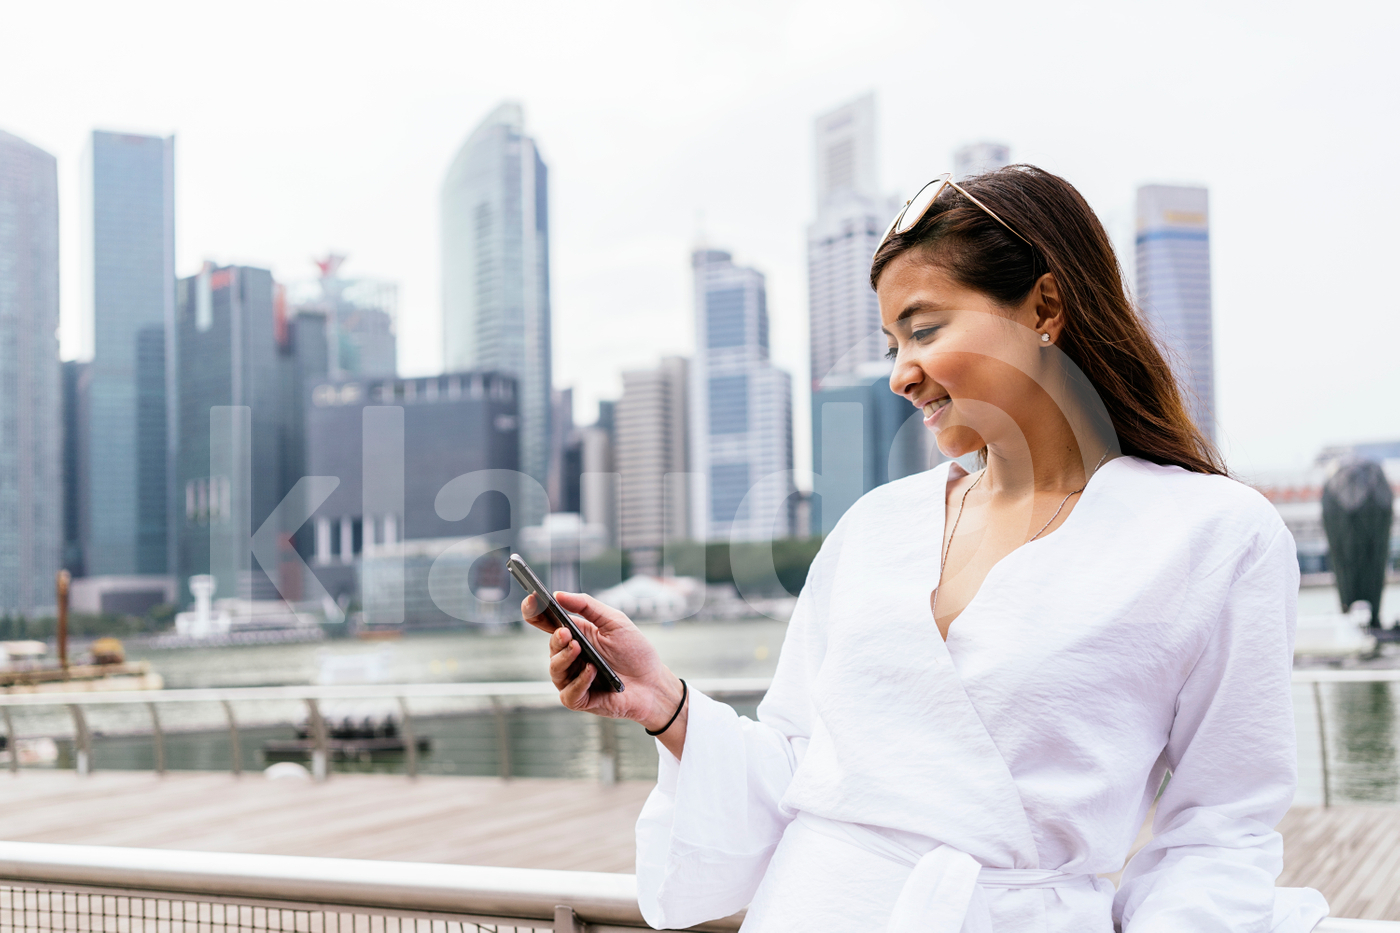 Asian woman standing  outdoors using smartphone